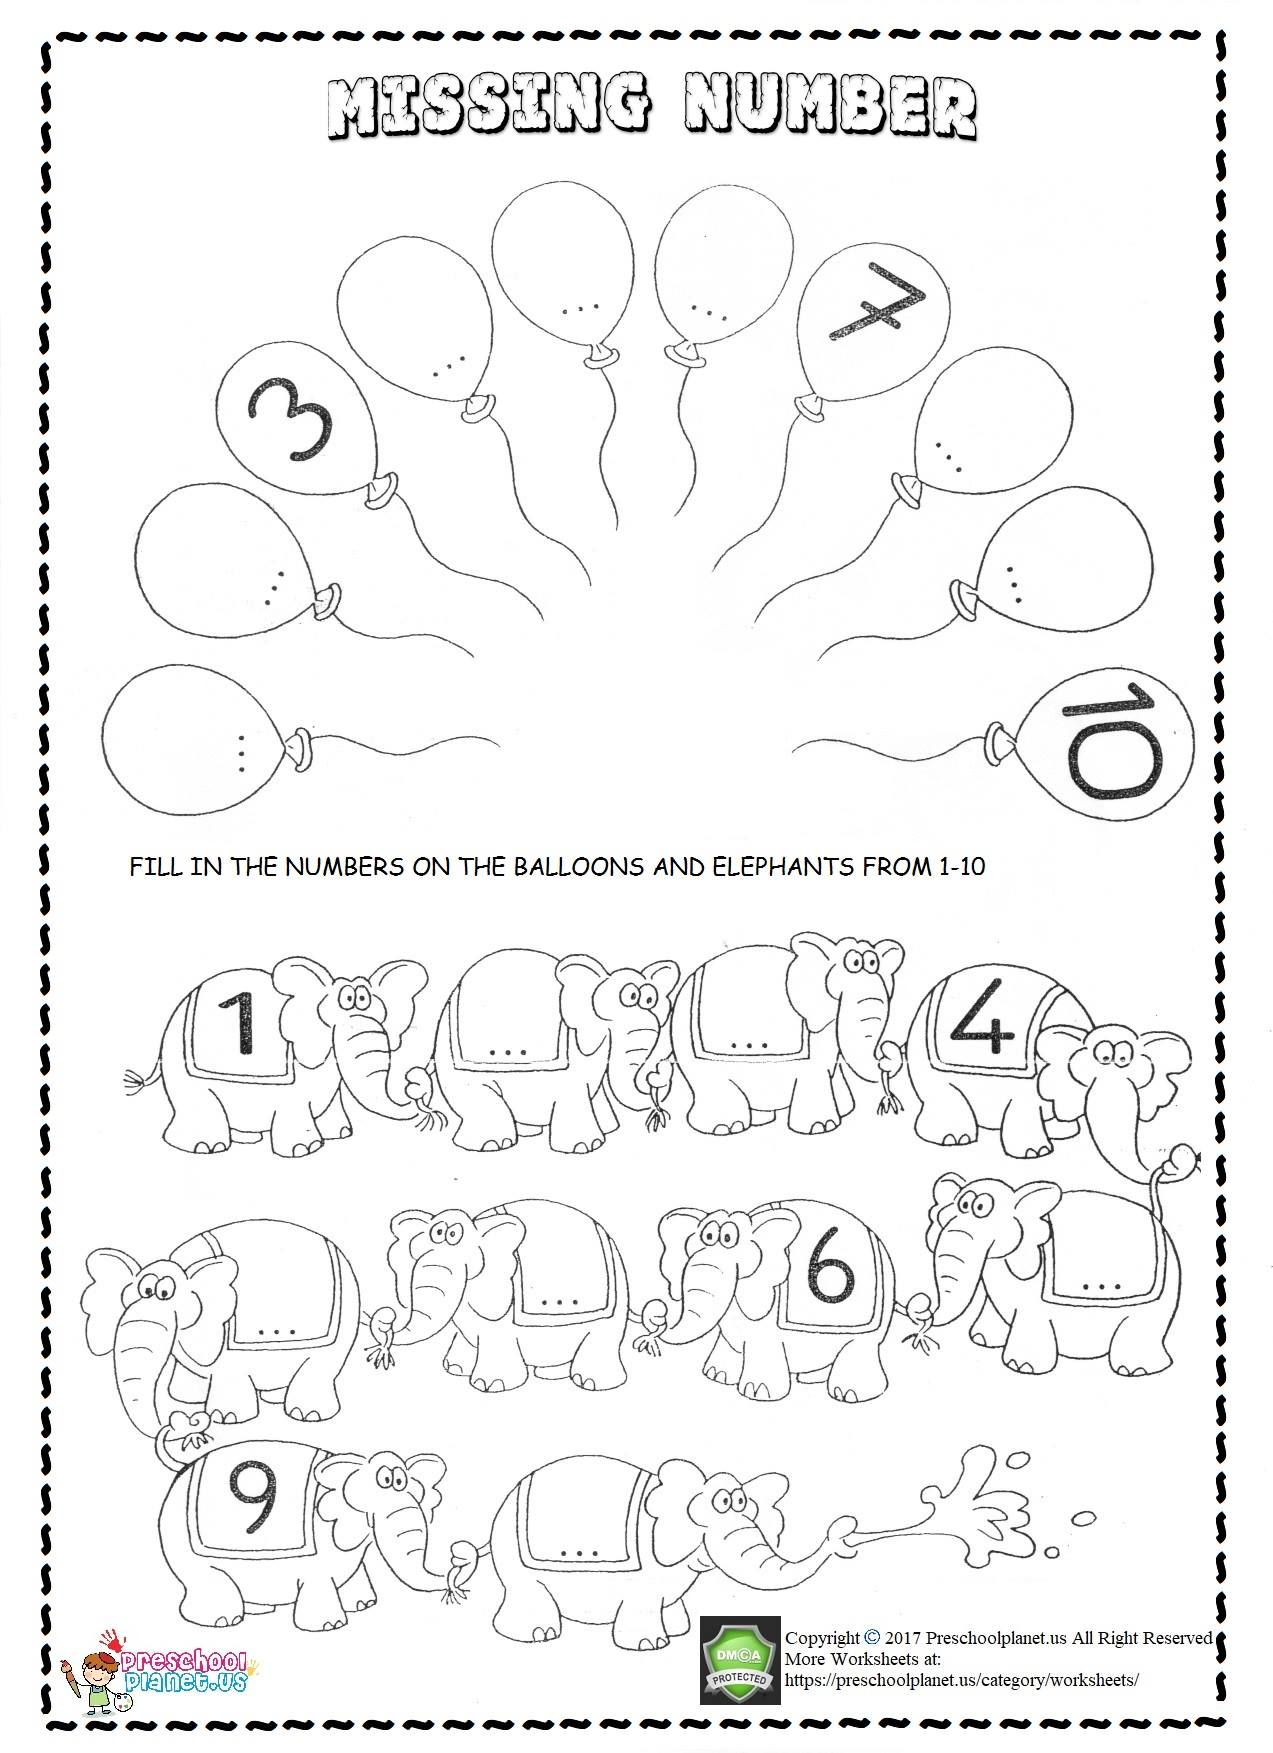 Missing Number Worksheets For Kids